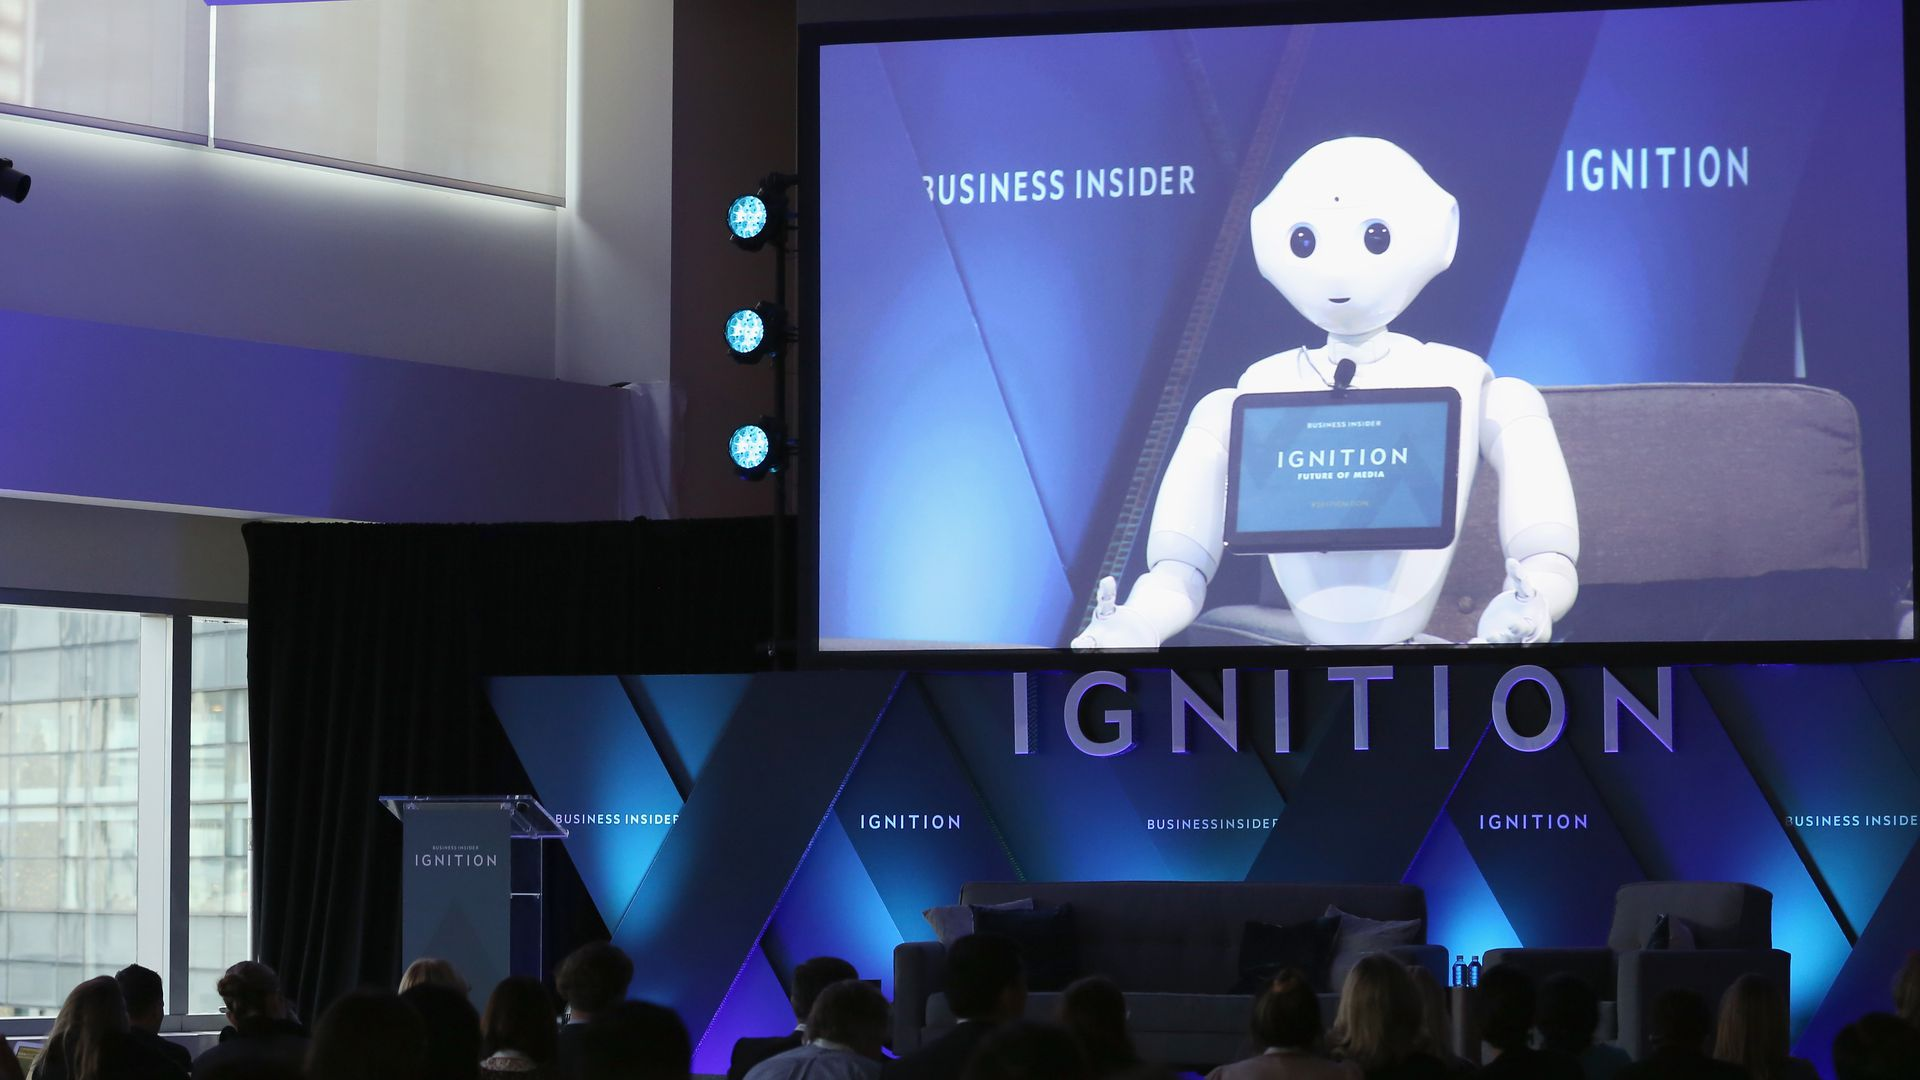 A robot is shown on a screen at a conference